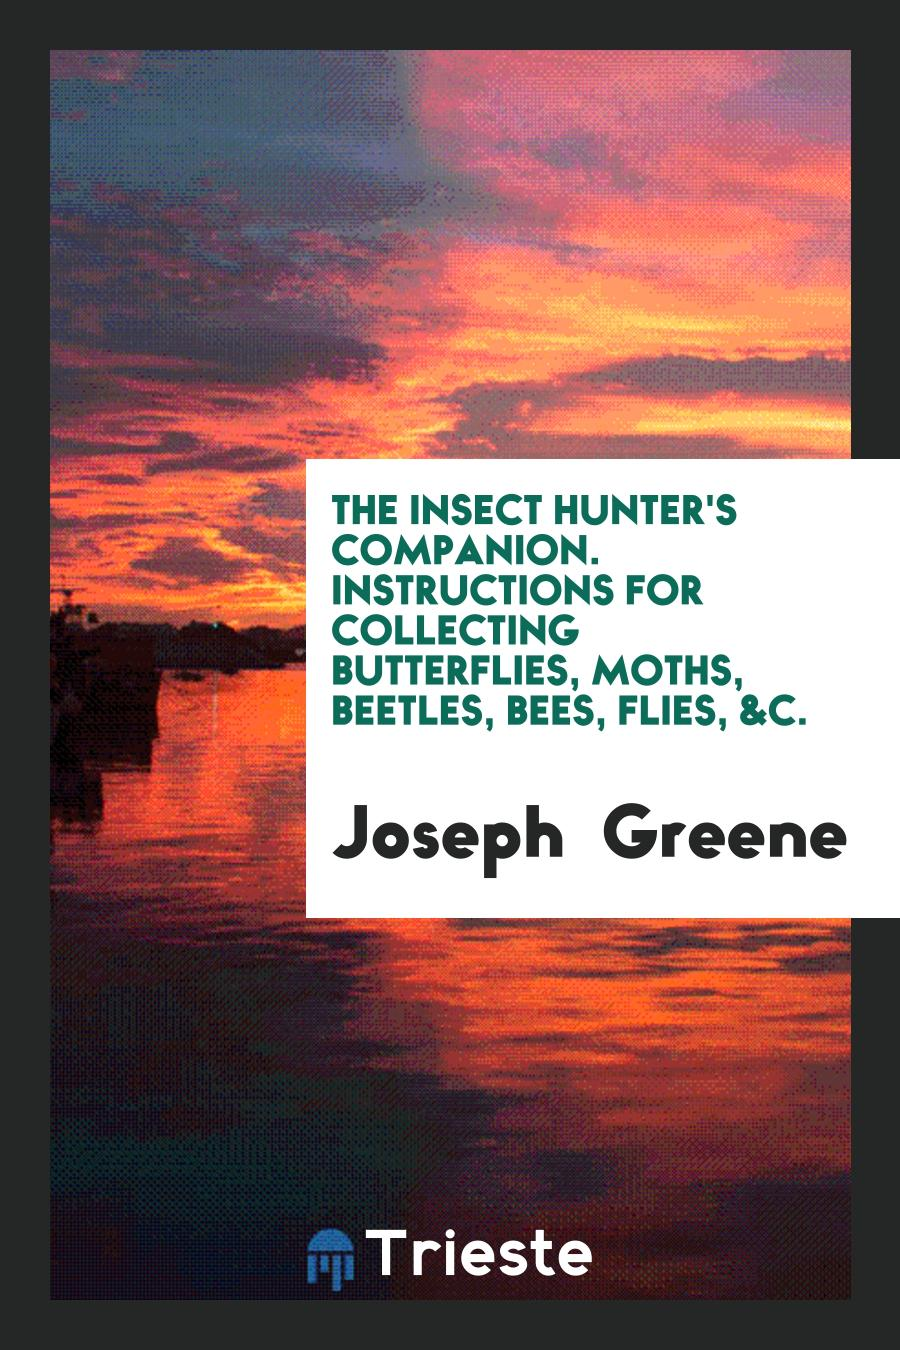 The Insect Hunter's Companion. Instructions for Collecting Butterflies, Moths, Beetles, Bees, Flies, &C.